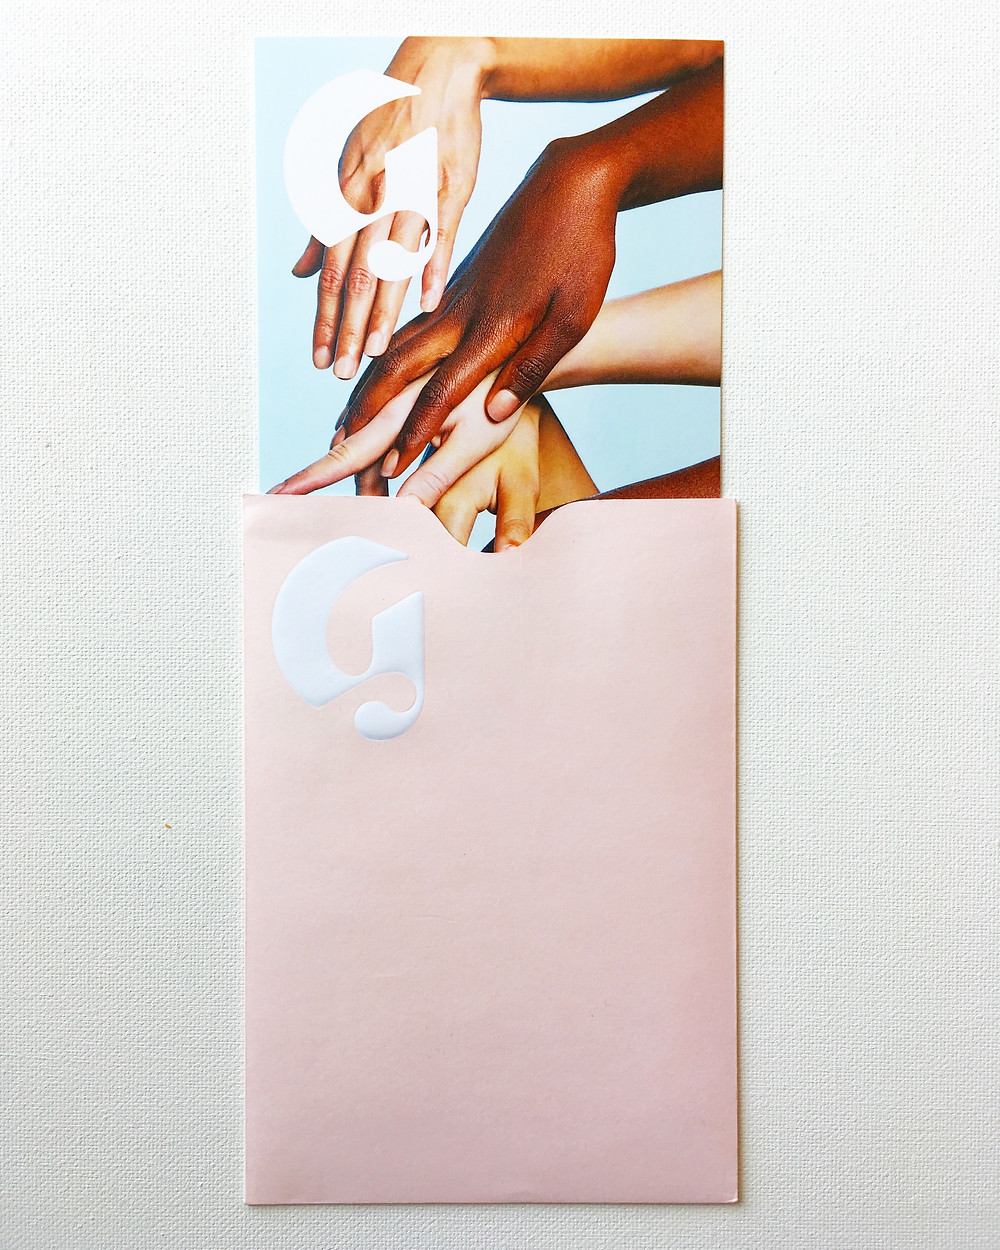 Glossier Packaging and Design - Heartthrob Studio Design Vault